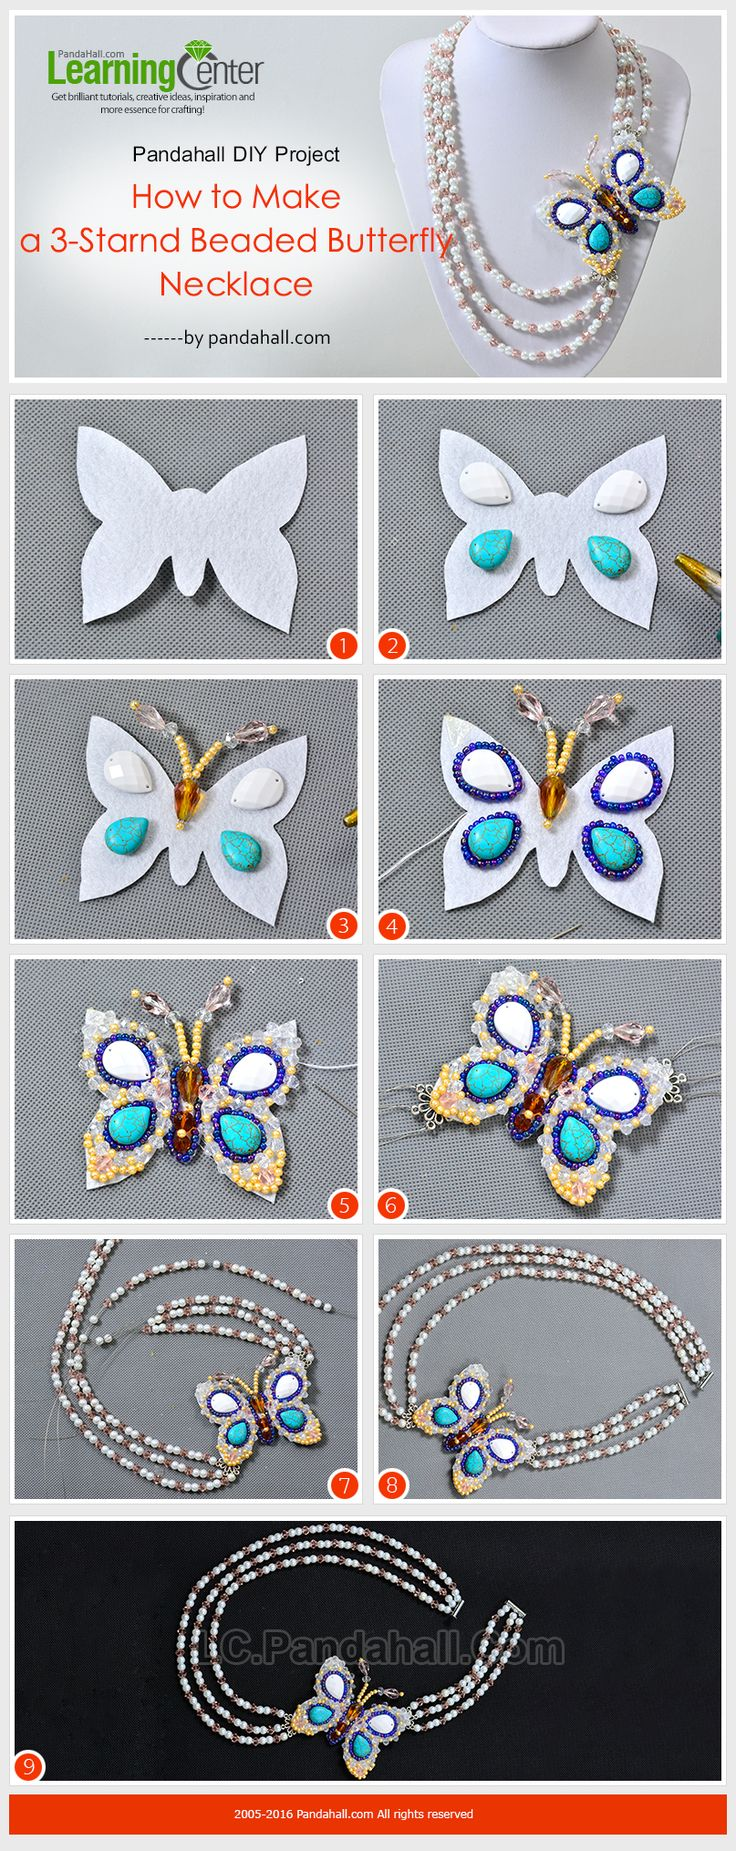 Pandahall DIY Project - How to Make a 3-Strand Beaded Butterfly Necklace from LC.Pandahall.com